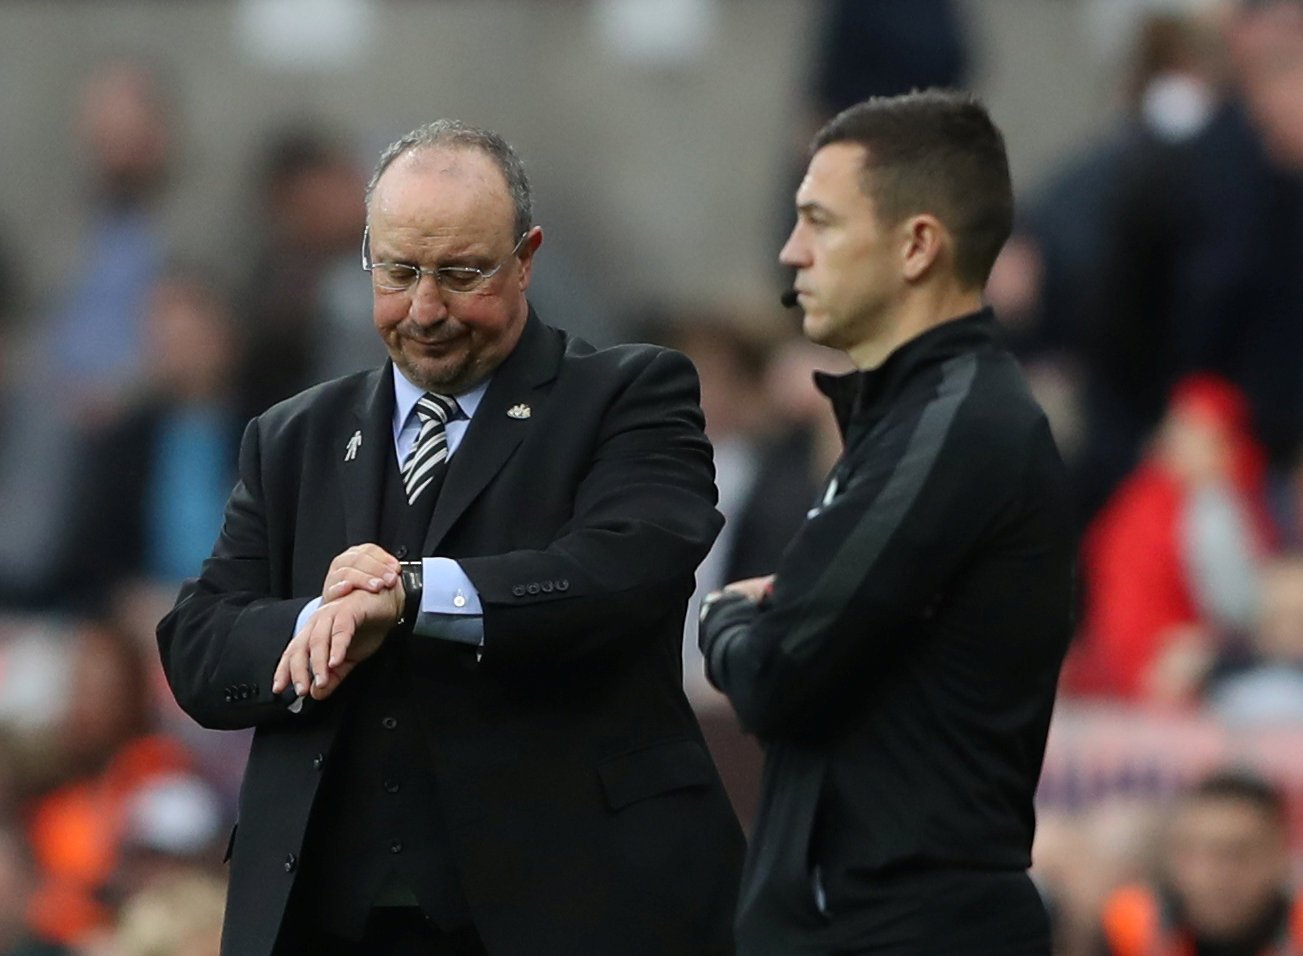 The biggest defence of Benitez is transfer policy, but Newcastle's squad is filled with PL experience